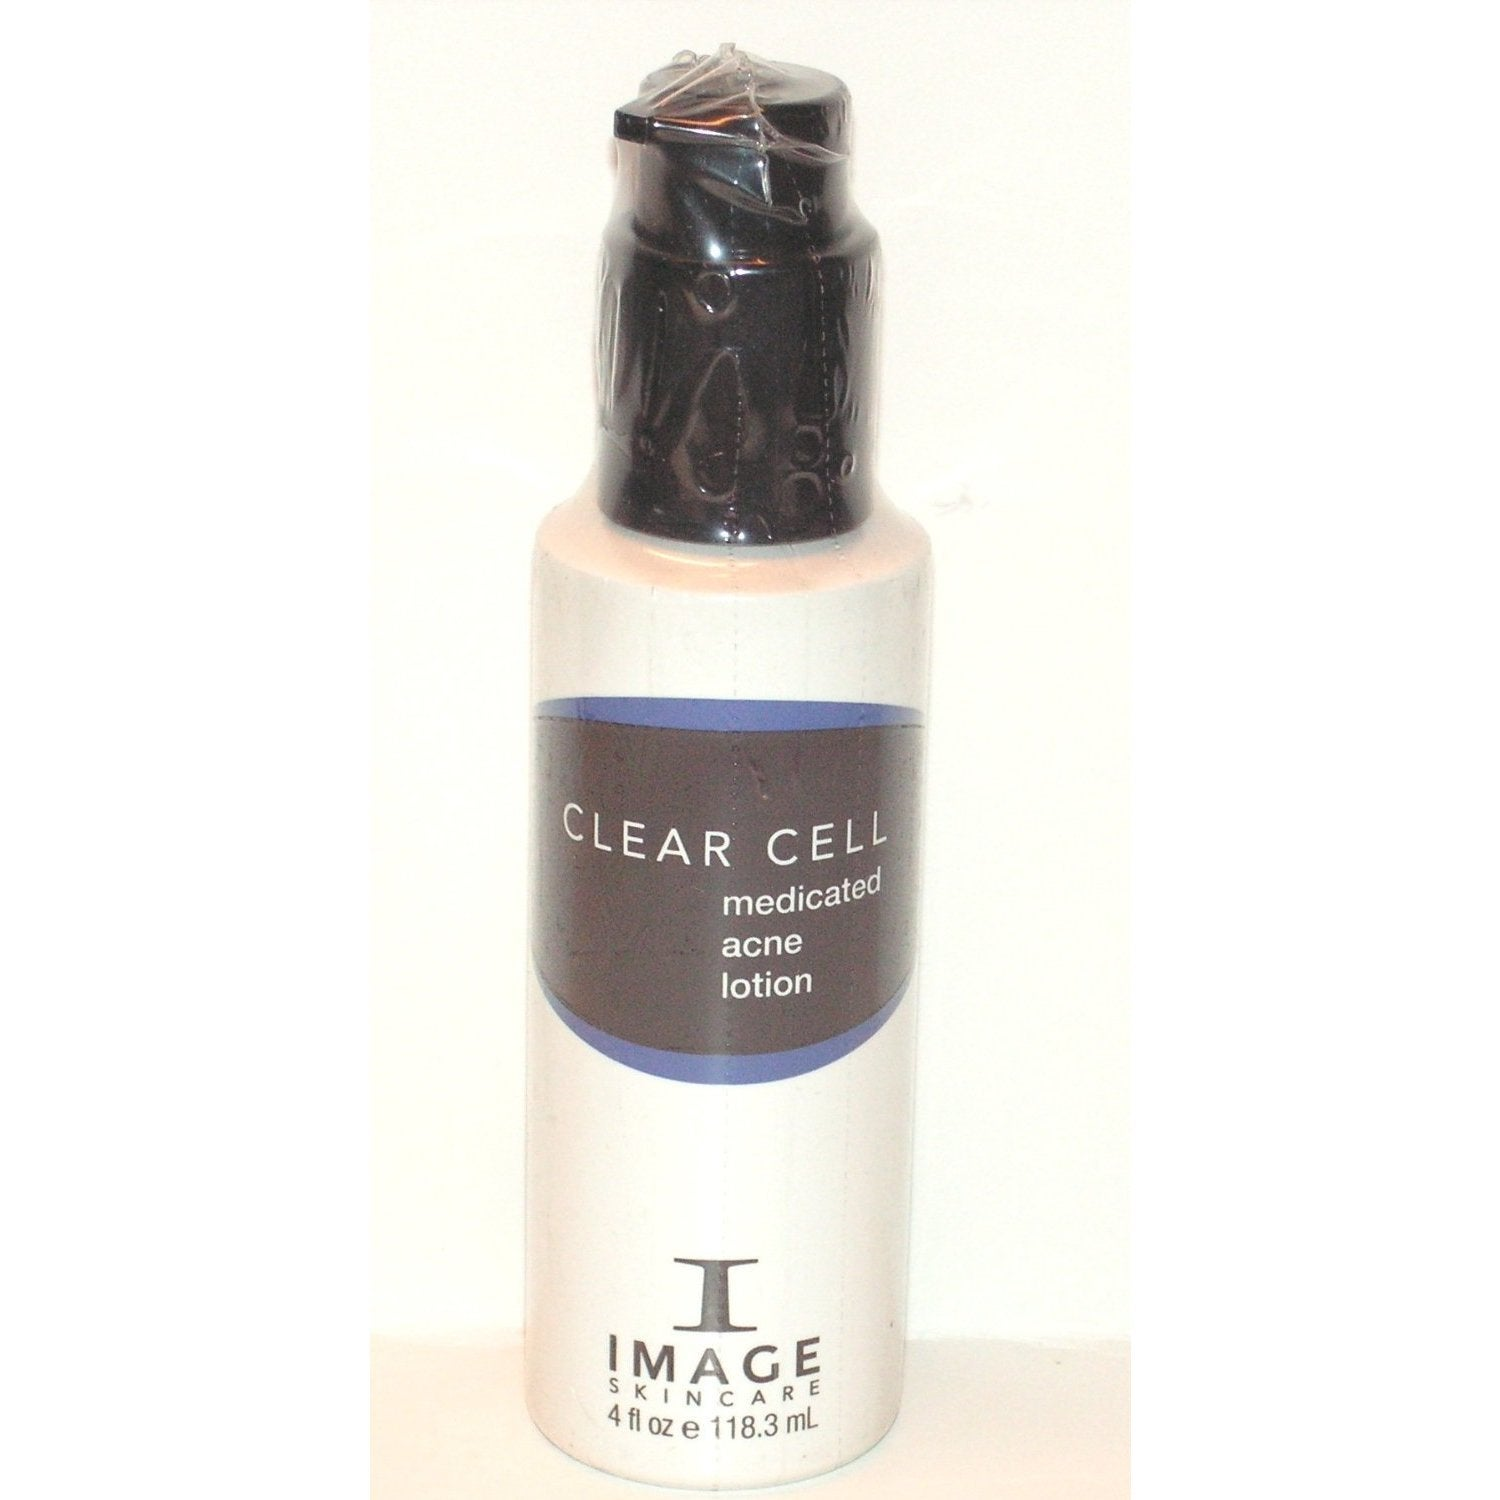 Shop Image Skincare Clear Cell 4 Ounce Medicated Acne Lotion Free